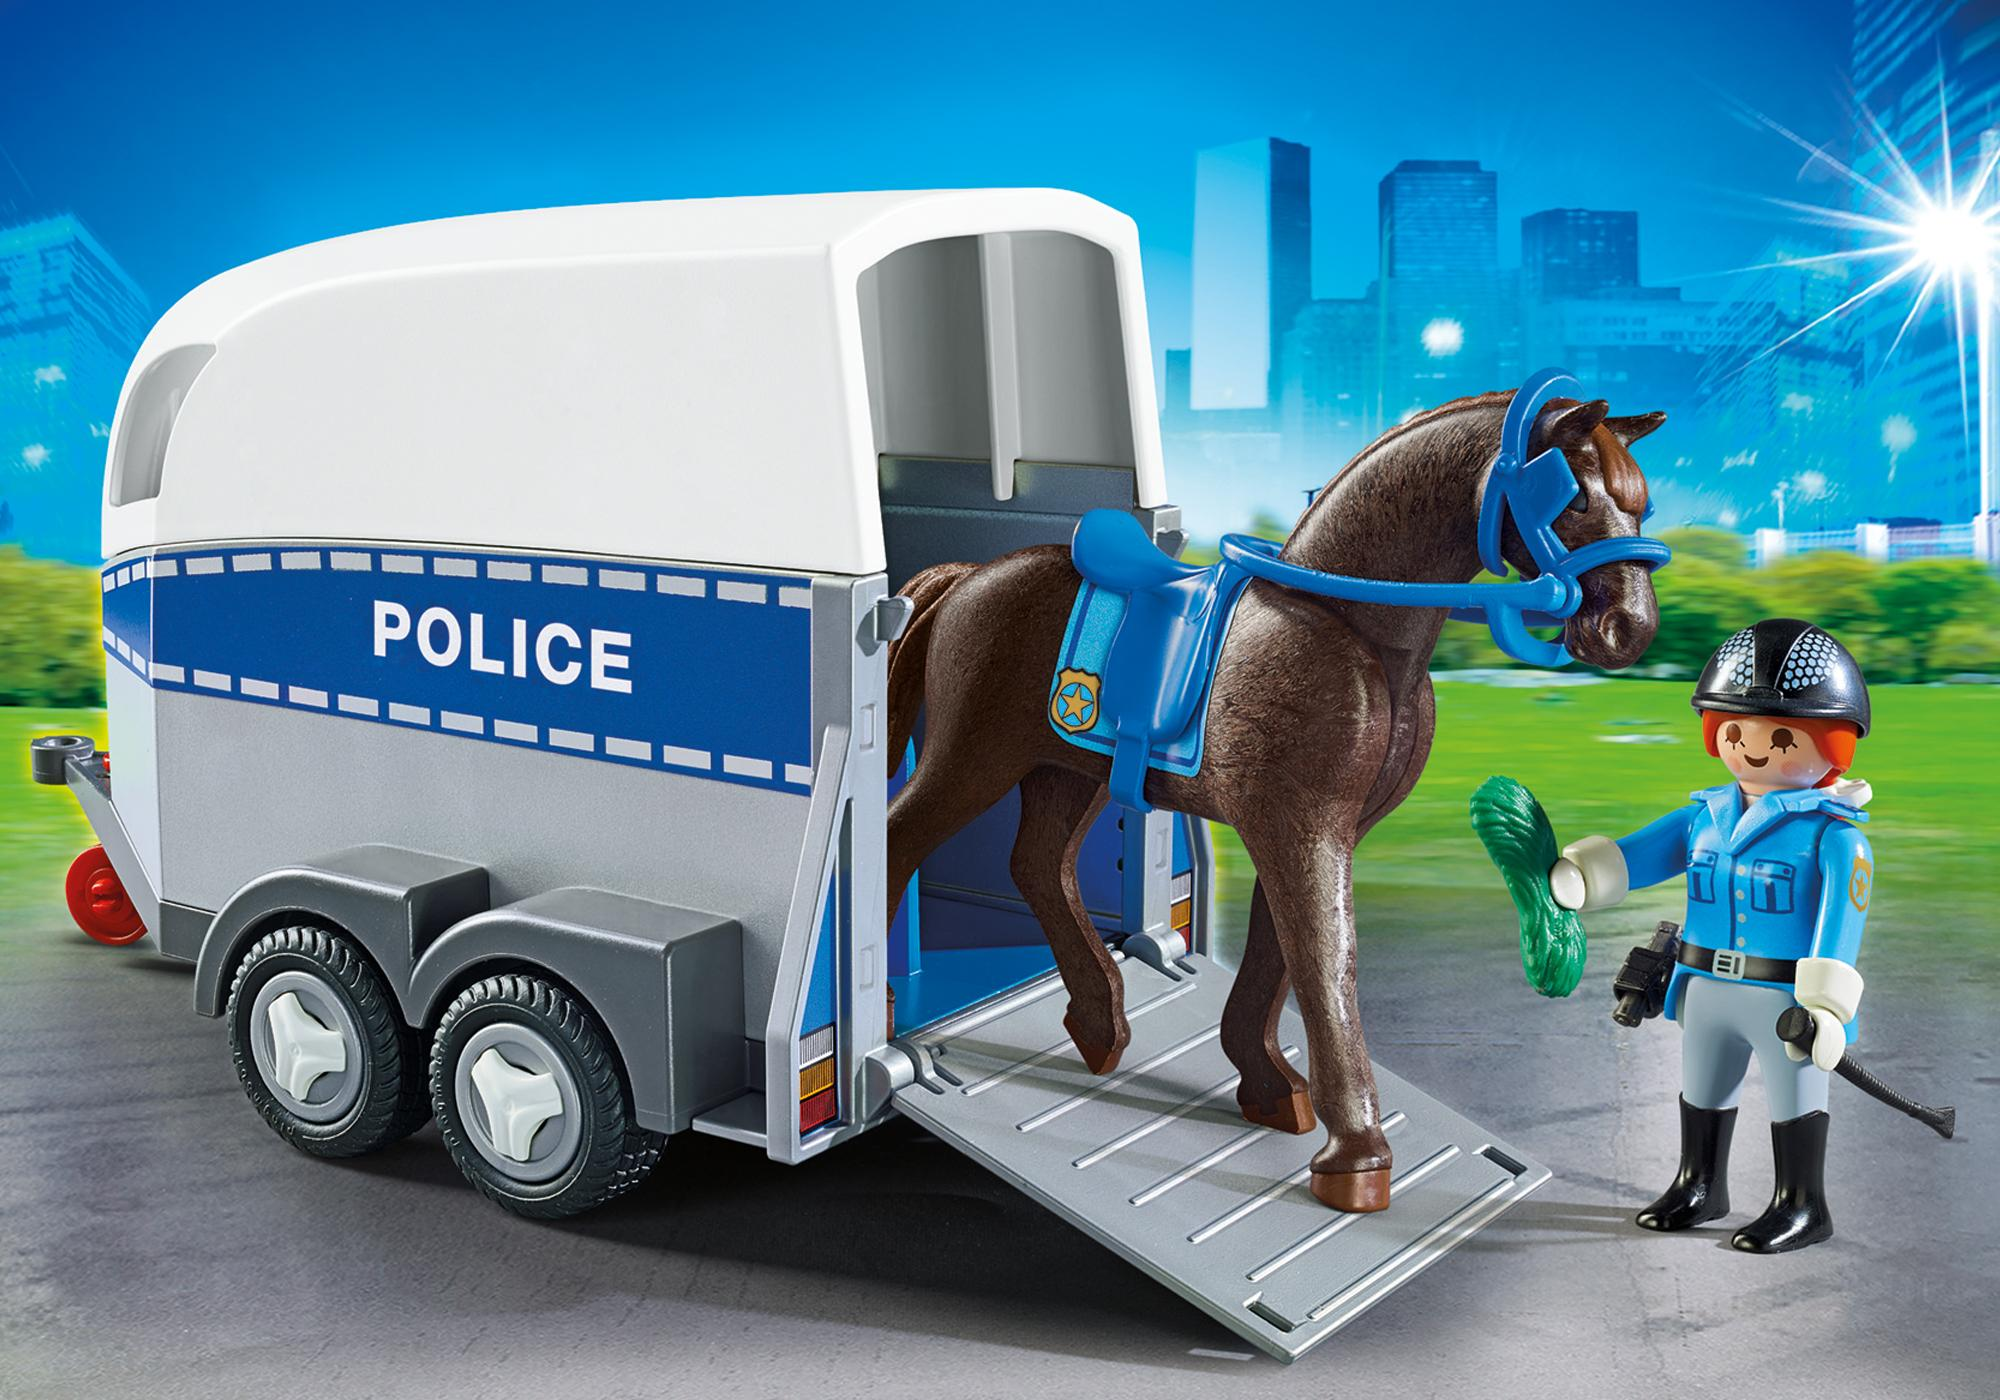 http://media.playmobil.com/i/playmobil/6922_product_detail